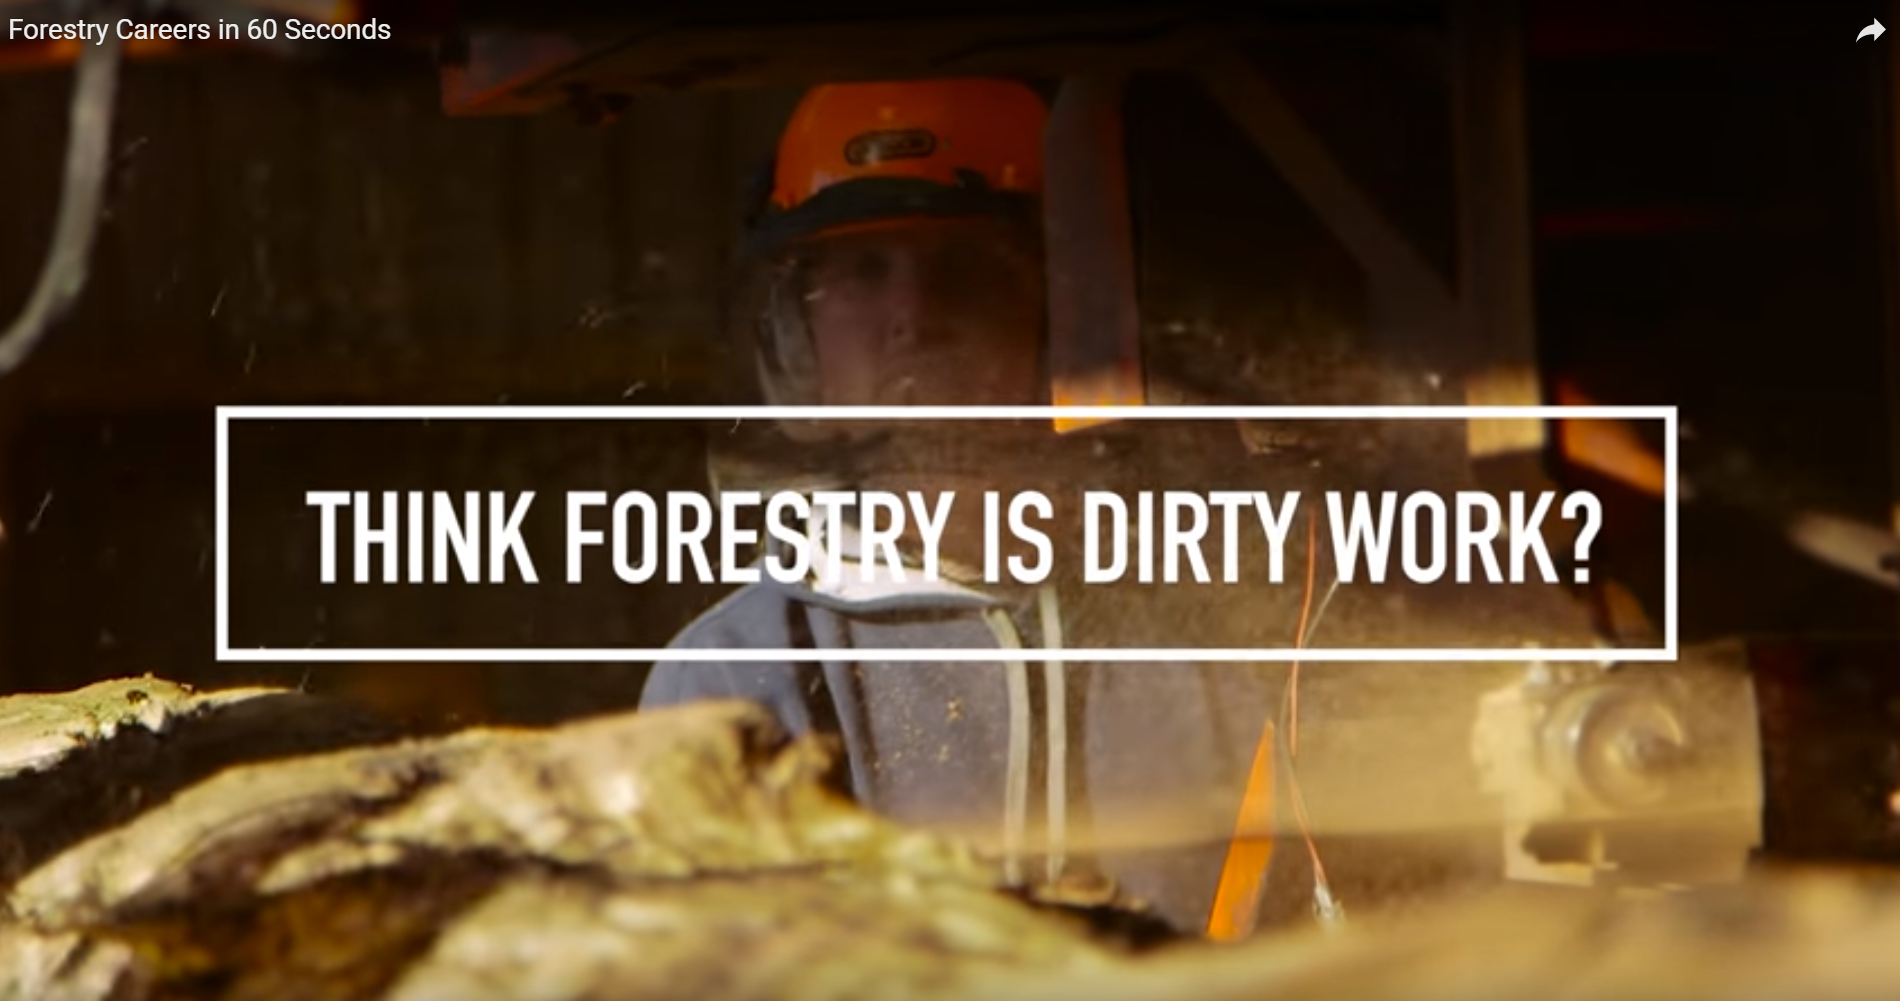 Still from ICF forestry careers video